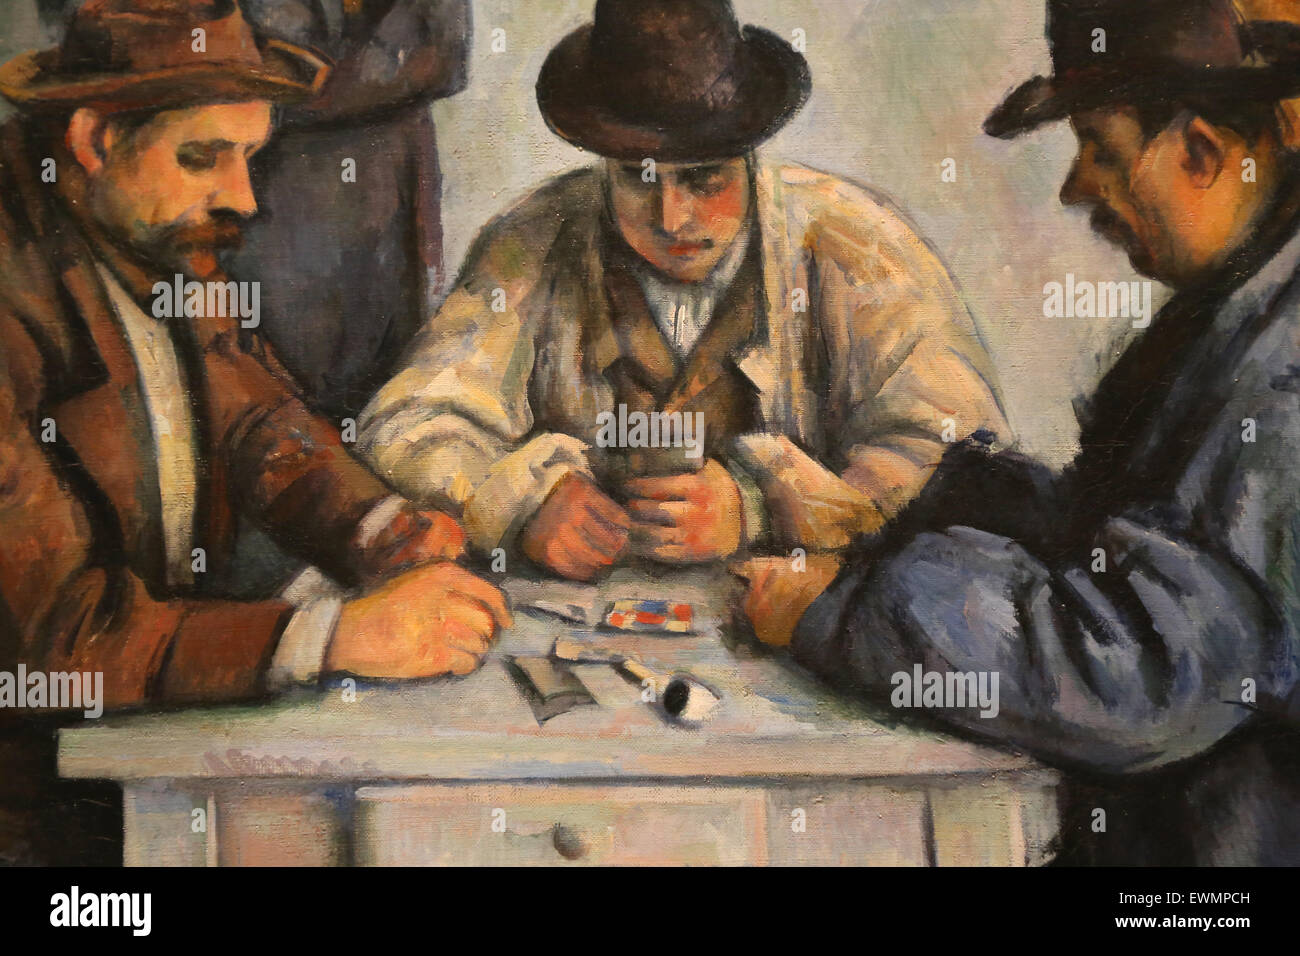 Paul Cezanne (1839-1906).  French painter. The Card Players, 1880-92. Oil on canvas. Metropolitan Museum of Art. - Stock Image